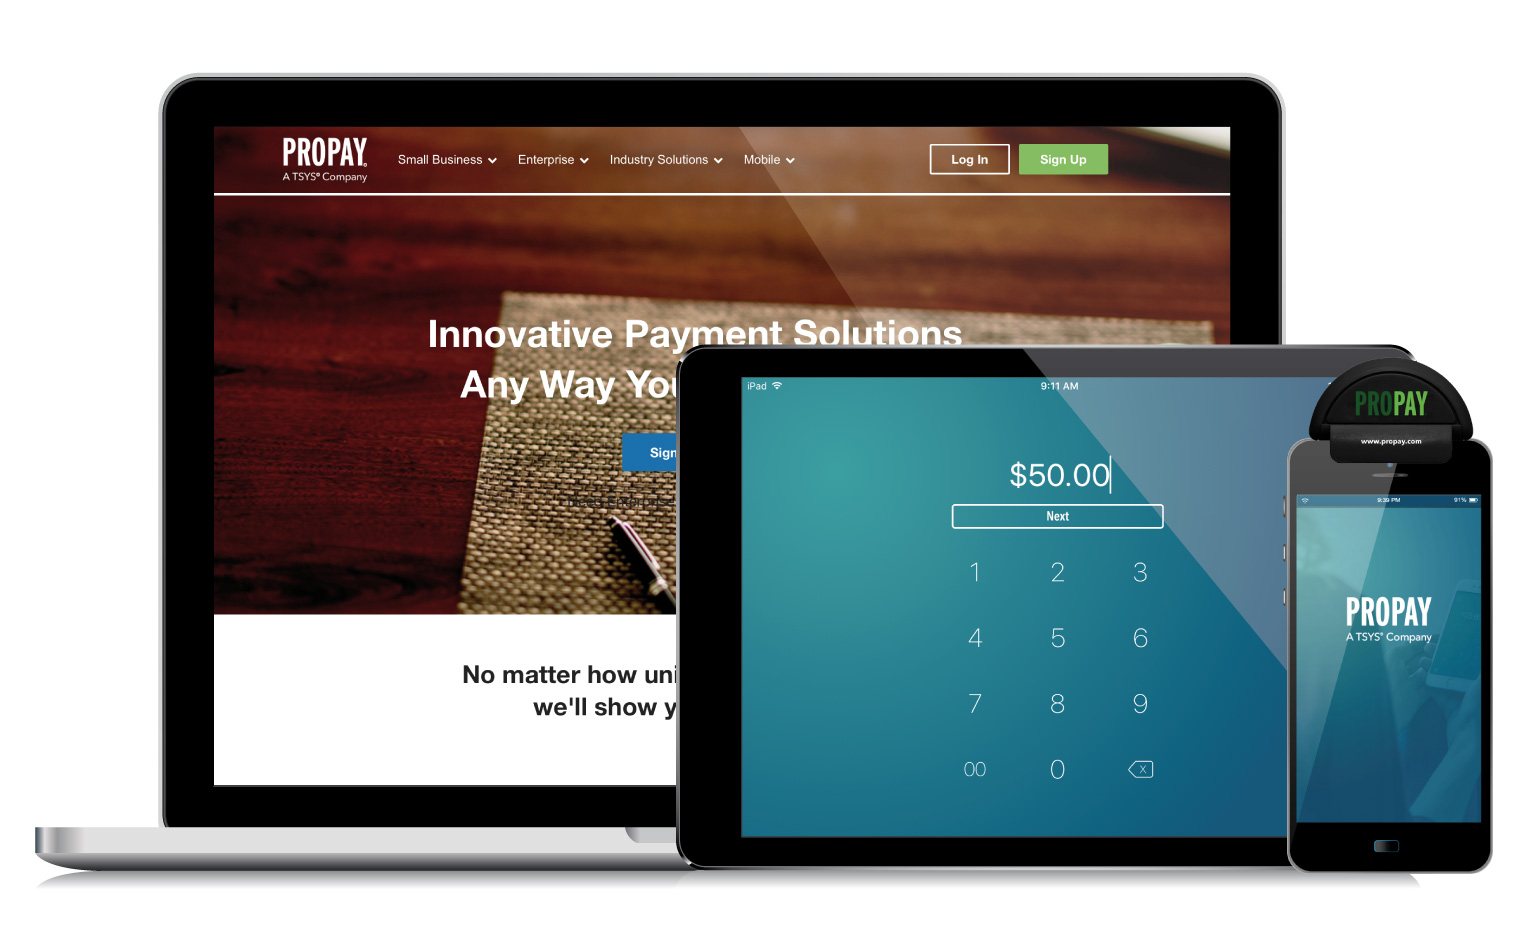 Mobile Credit Card Payment Solutions for Small Businesses | ProPay